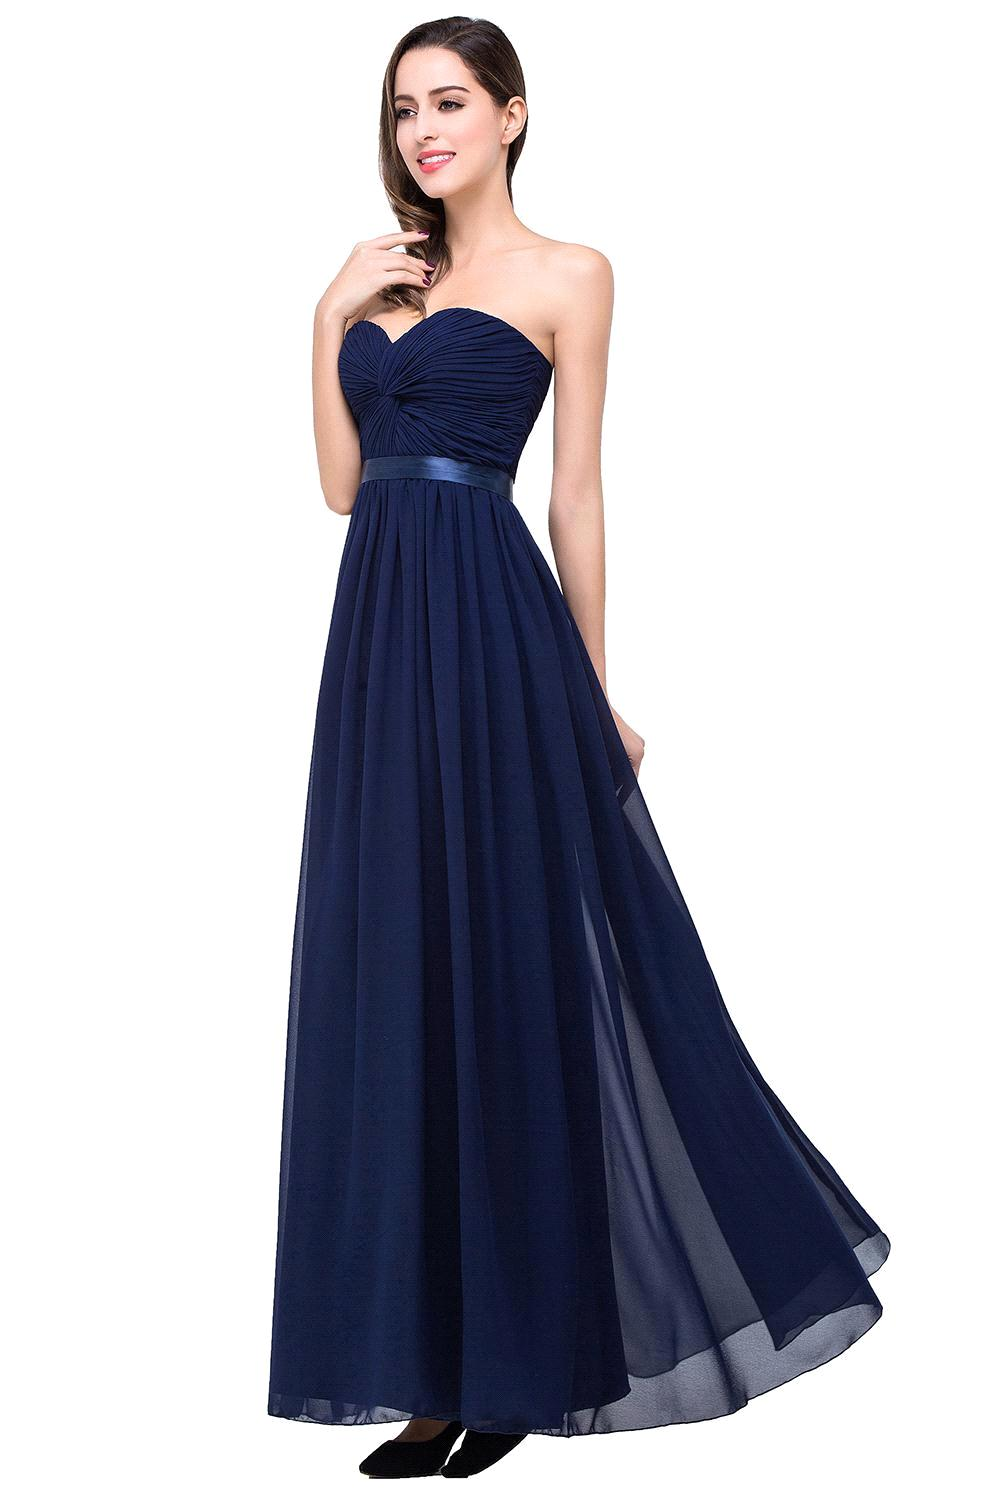 Bridesmaid dresses 2016 picture more detailed picture about 3 3 colors real photo sexy sweetheart chiffon long navy blue bridesmaid dresses 2017 prom dress for ombrellifo Image collections